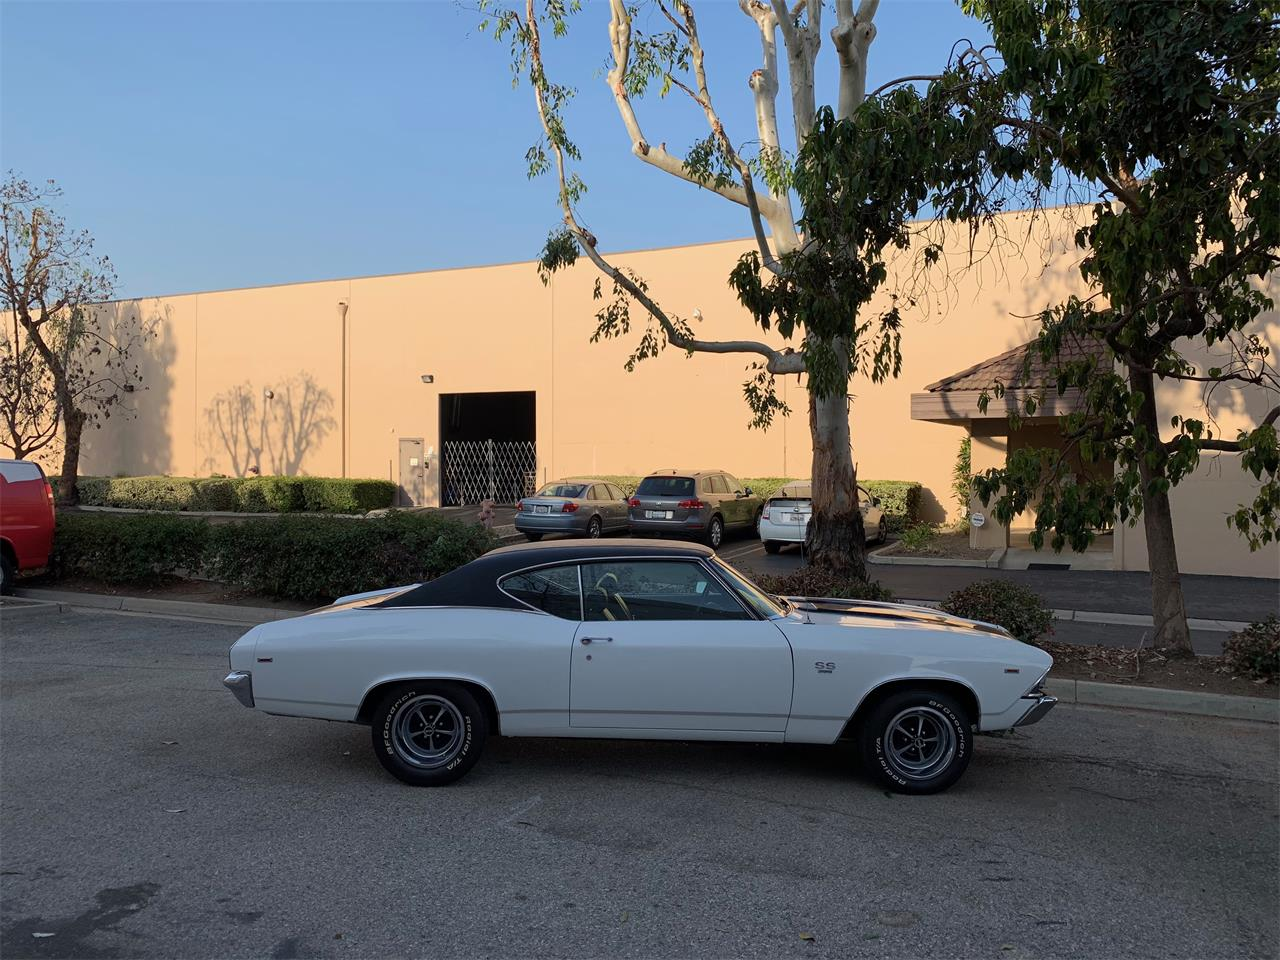 1969 Chevrolet Chevelle SS for sale in Irvine, CA – photo 5